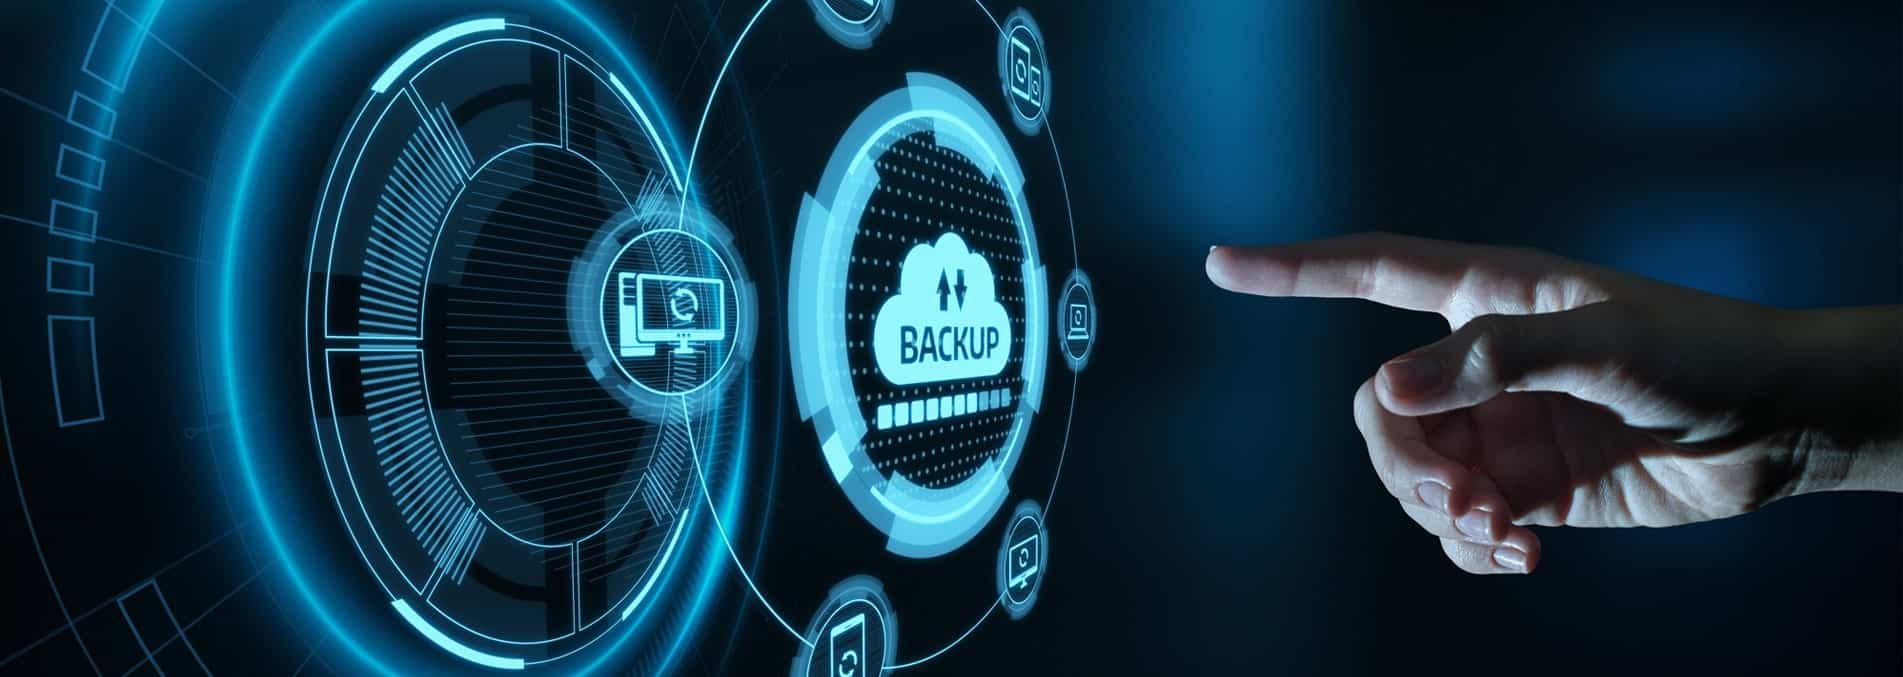 Data Backup as a service for SMBs